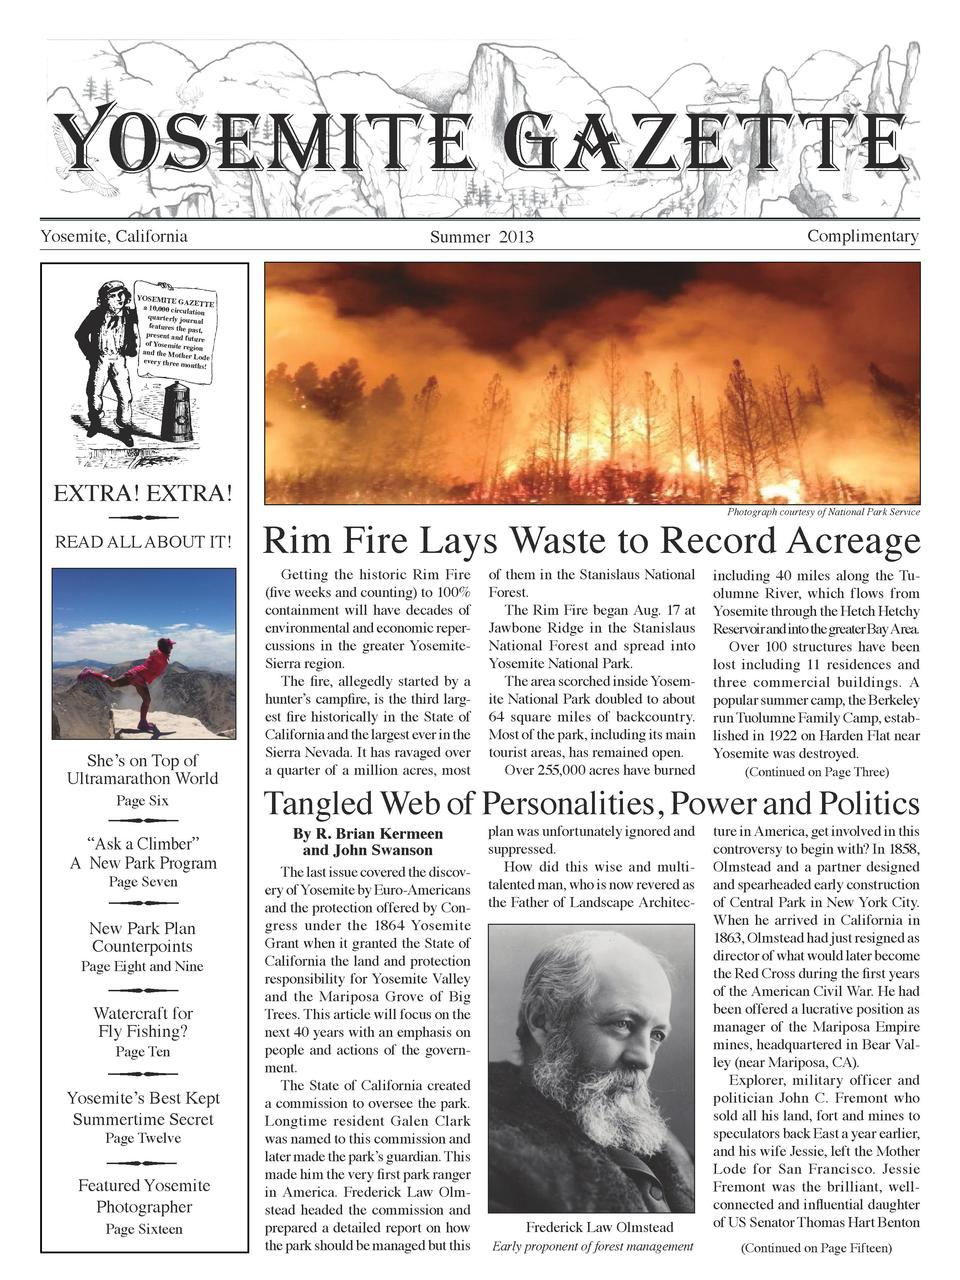 YOSEMITE GAZETTE Yosemite, California  Summer 2013  Complimentary  YOSEMITE GAZE a 10,000 circul TTE ation quarterly jou r...